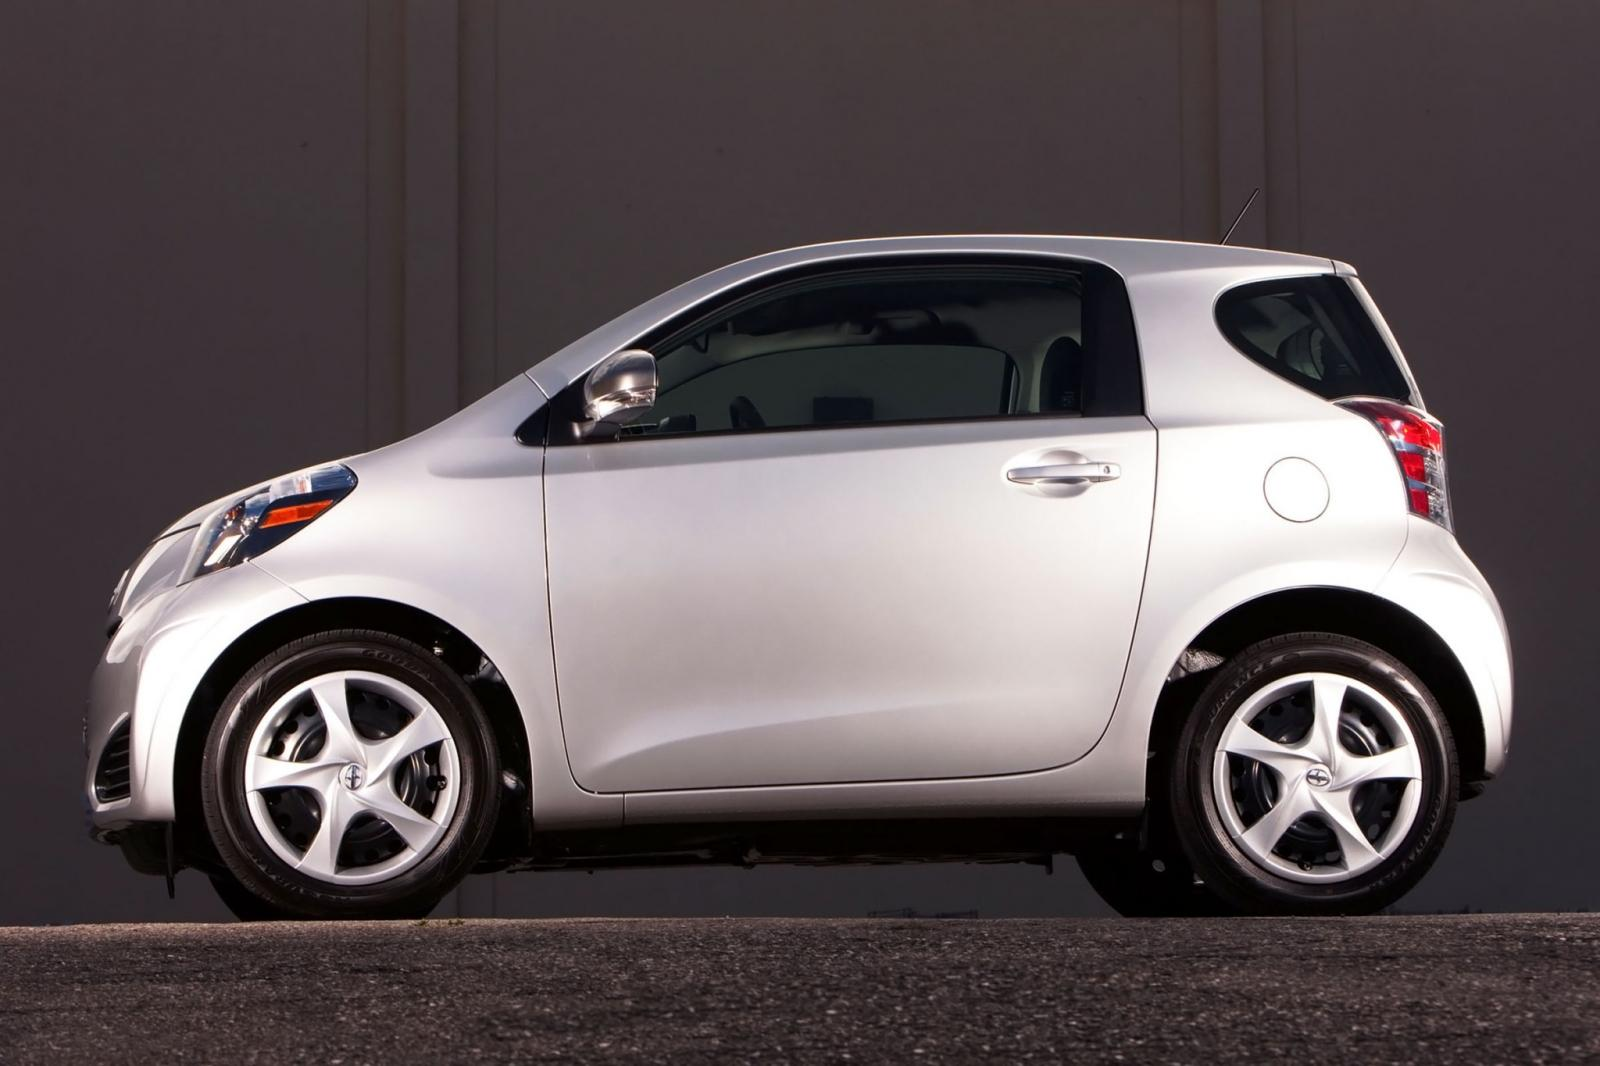 2014 scion iq information and photos zombiedrive. Black Bedroom Furniture Sets. Home Design Ideas